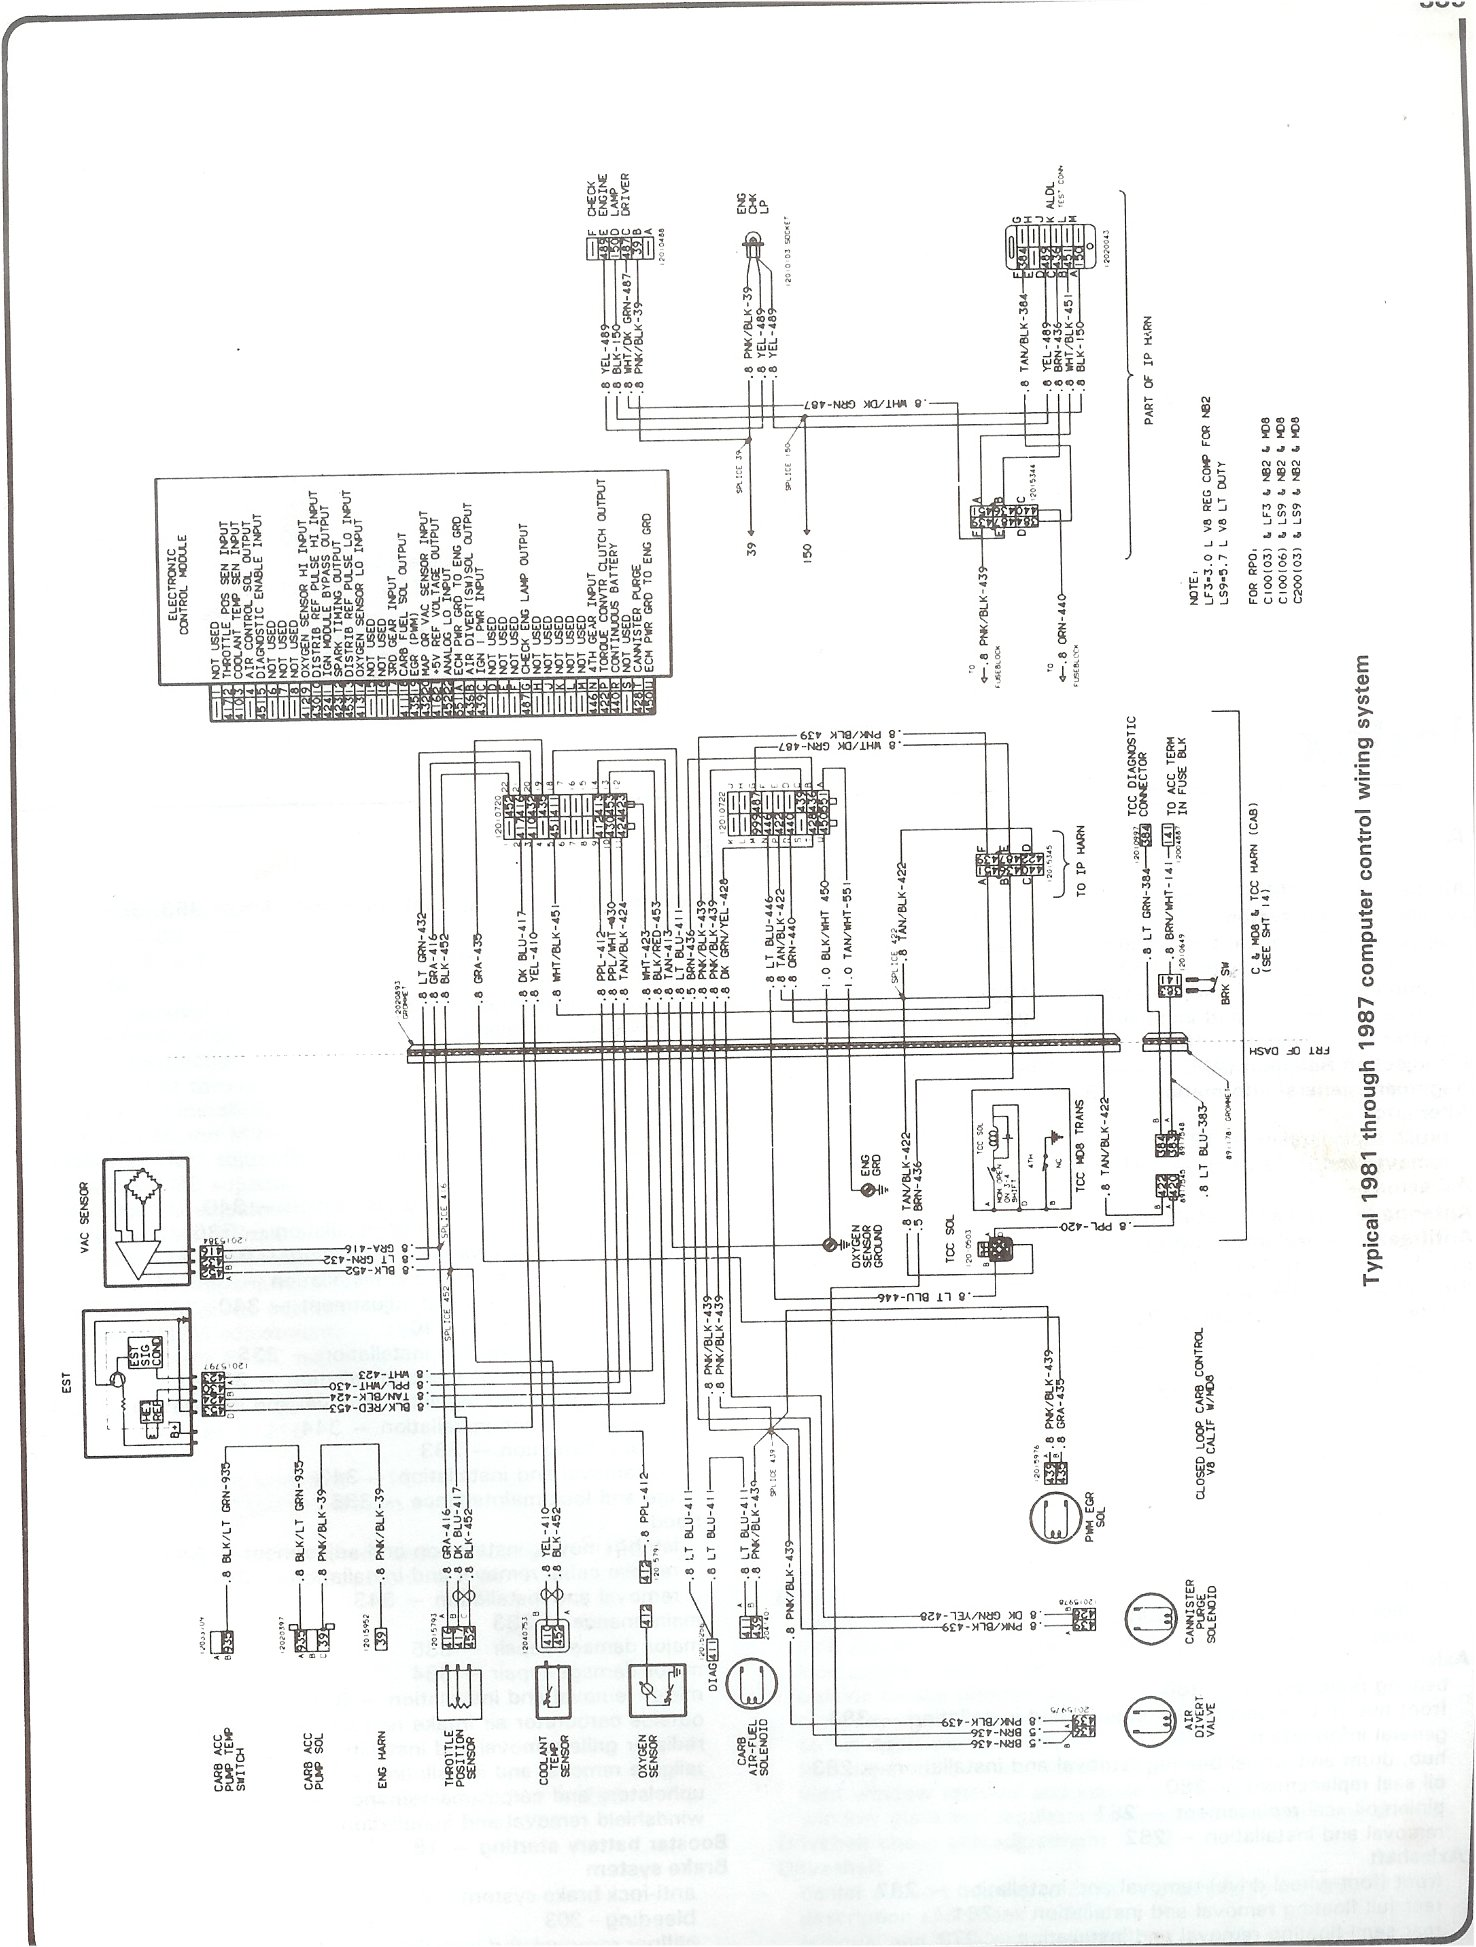 81 87_computer_control_wiring complete 73 87 wiring diagrams gm truck wiring harness at crackthecode.co